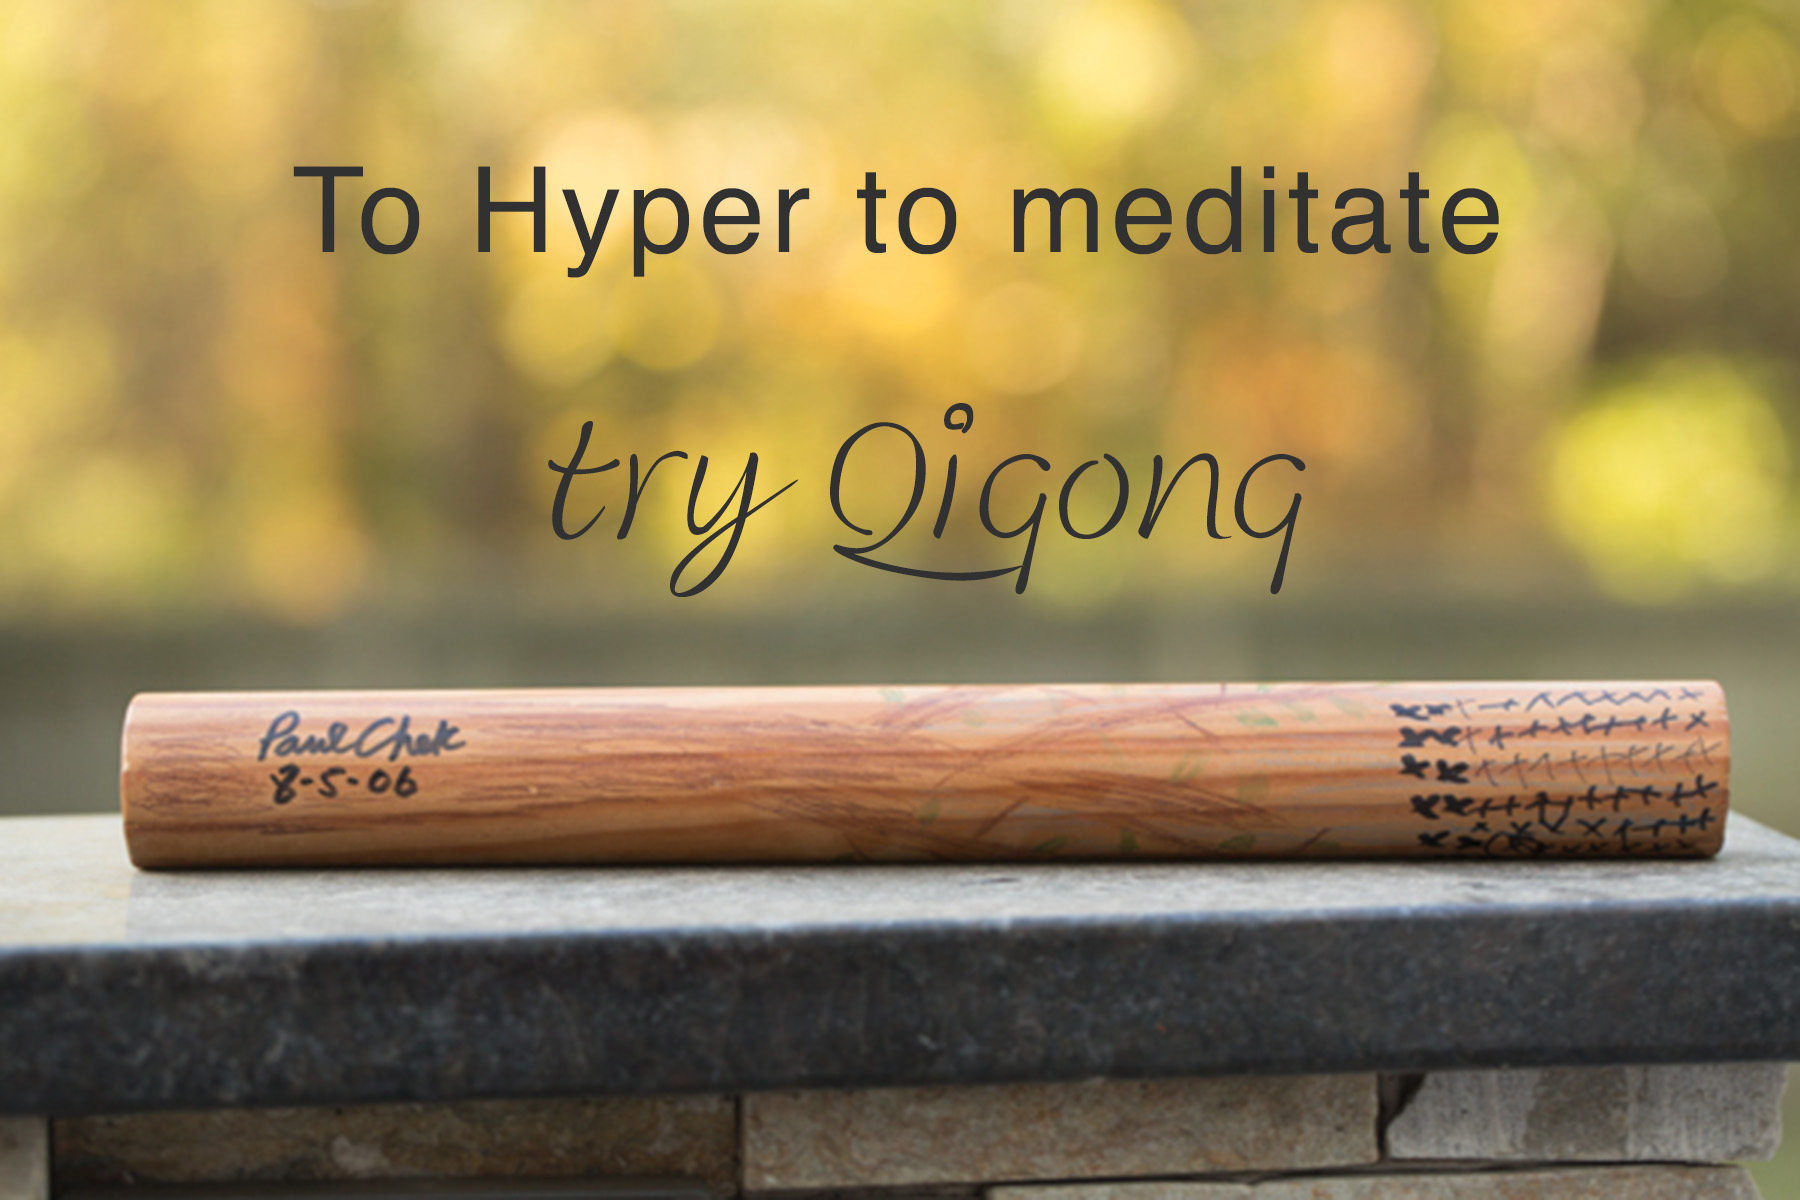 qigong stick for meditation